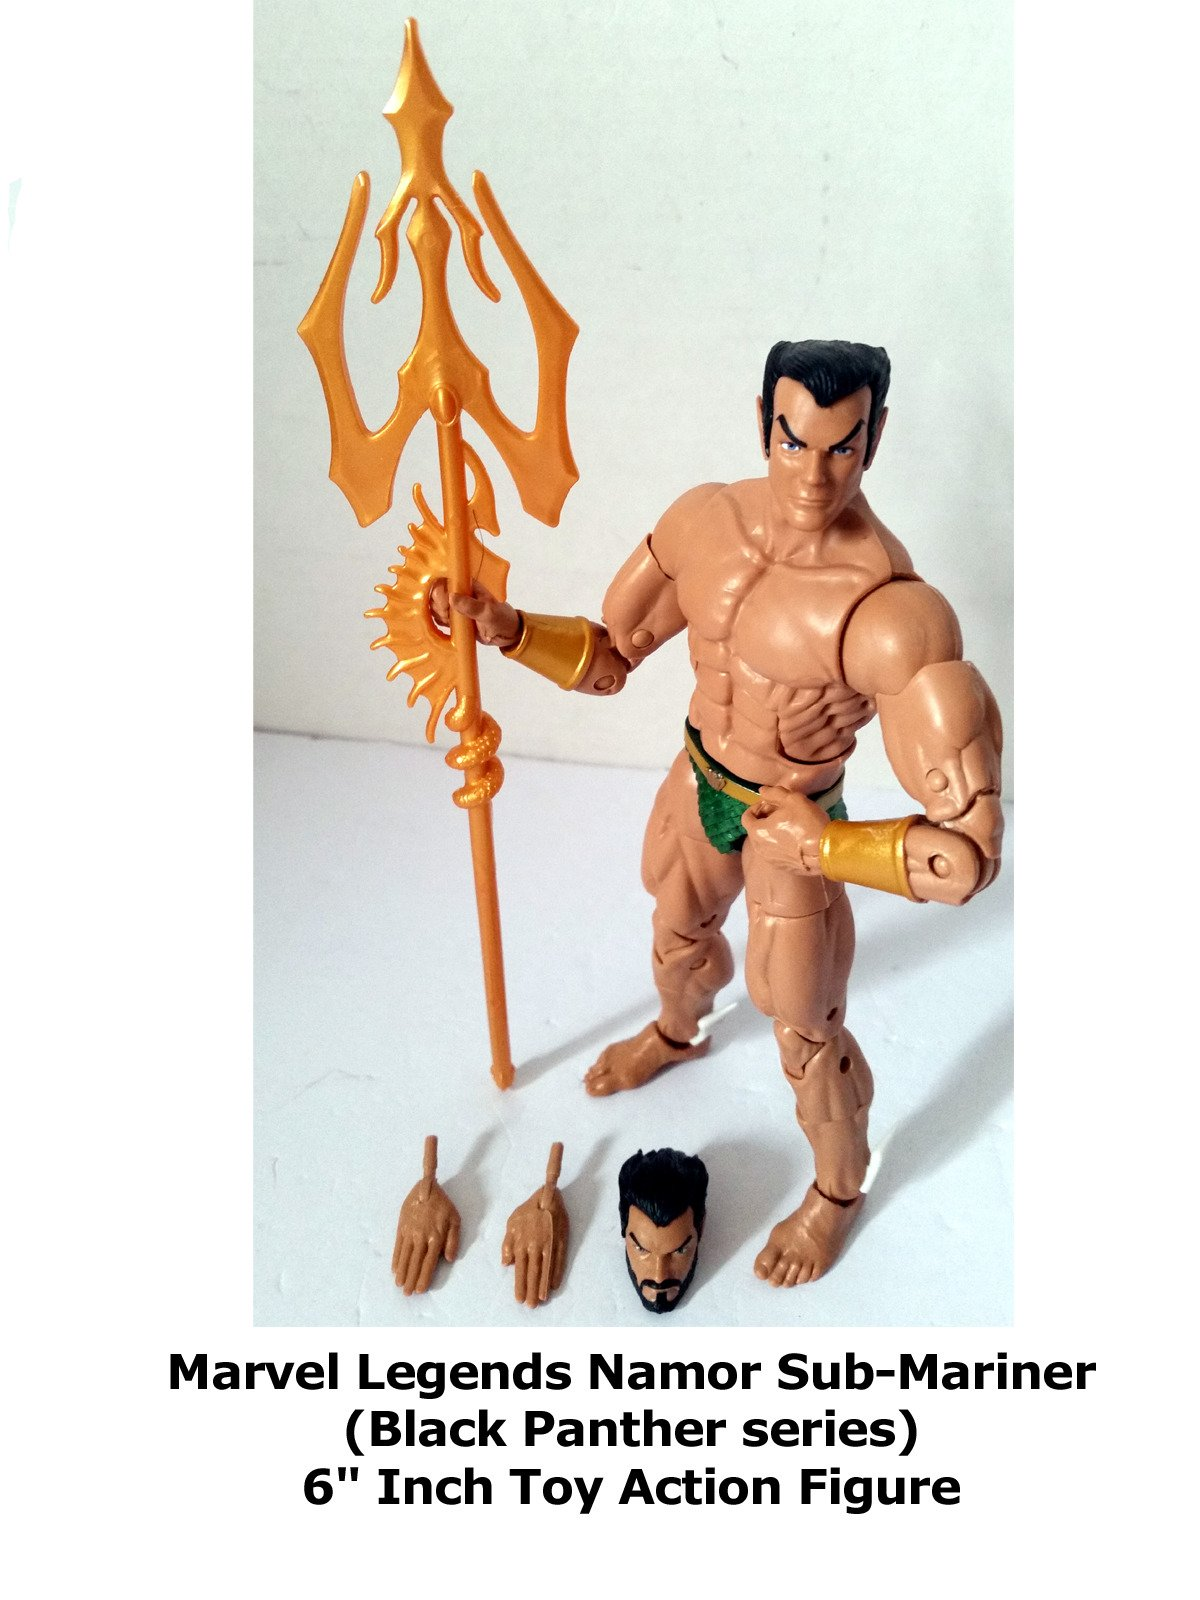 "Review: Marvel Legends Namor Sub-Mariner (Black Panther series) 6"" Inch Toy Action Figure on Amazon Prime Instant Video UK"